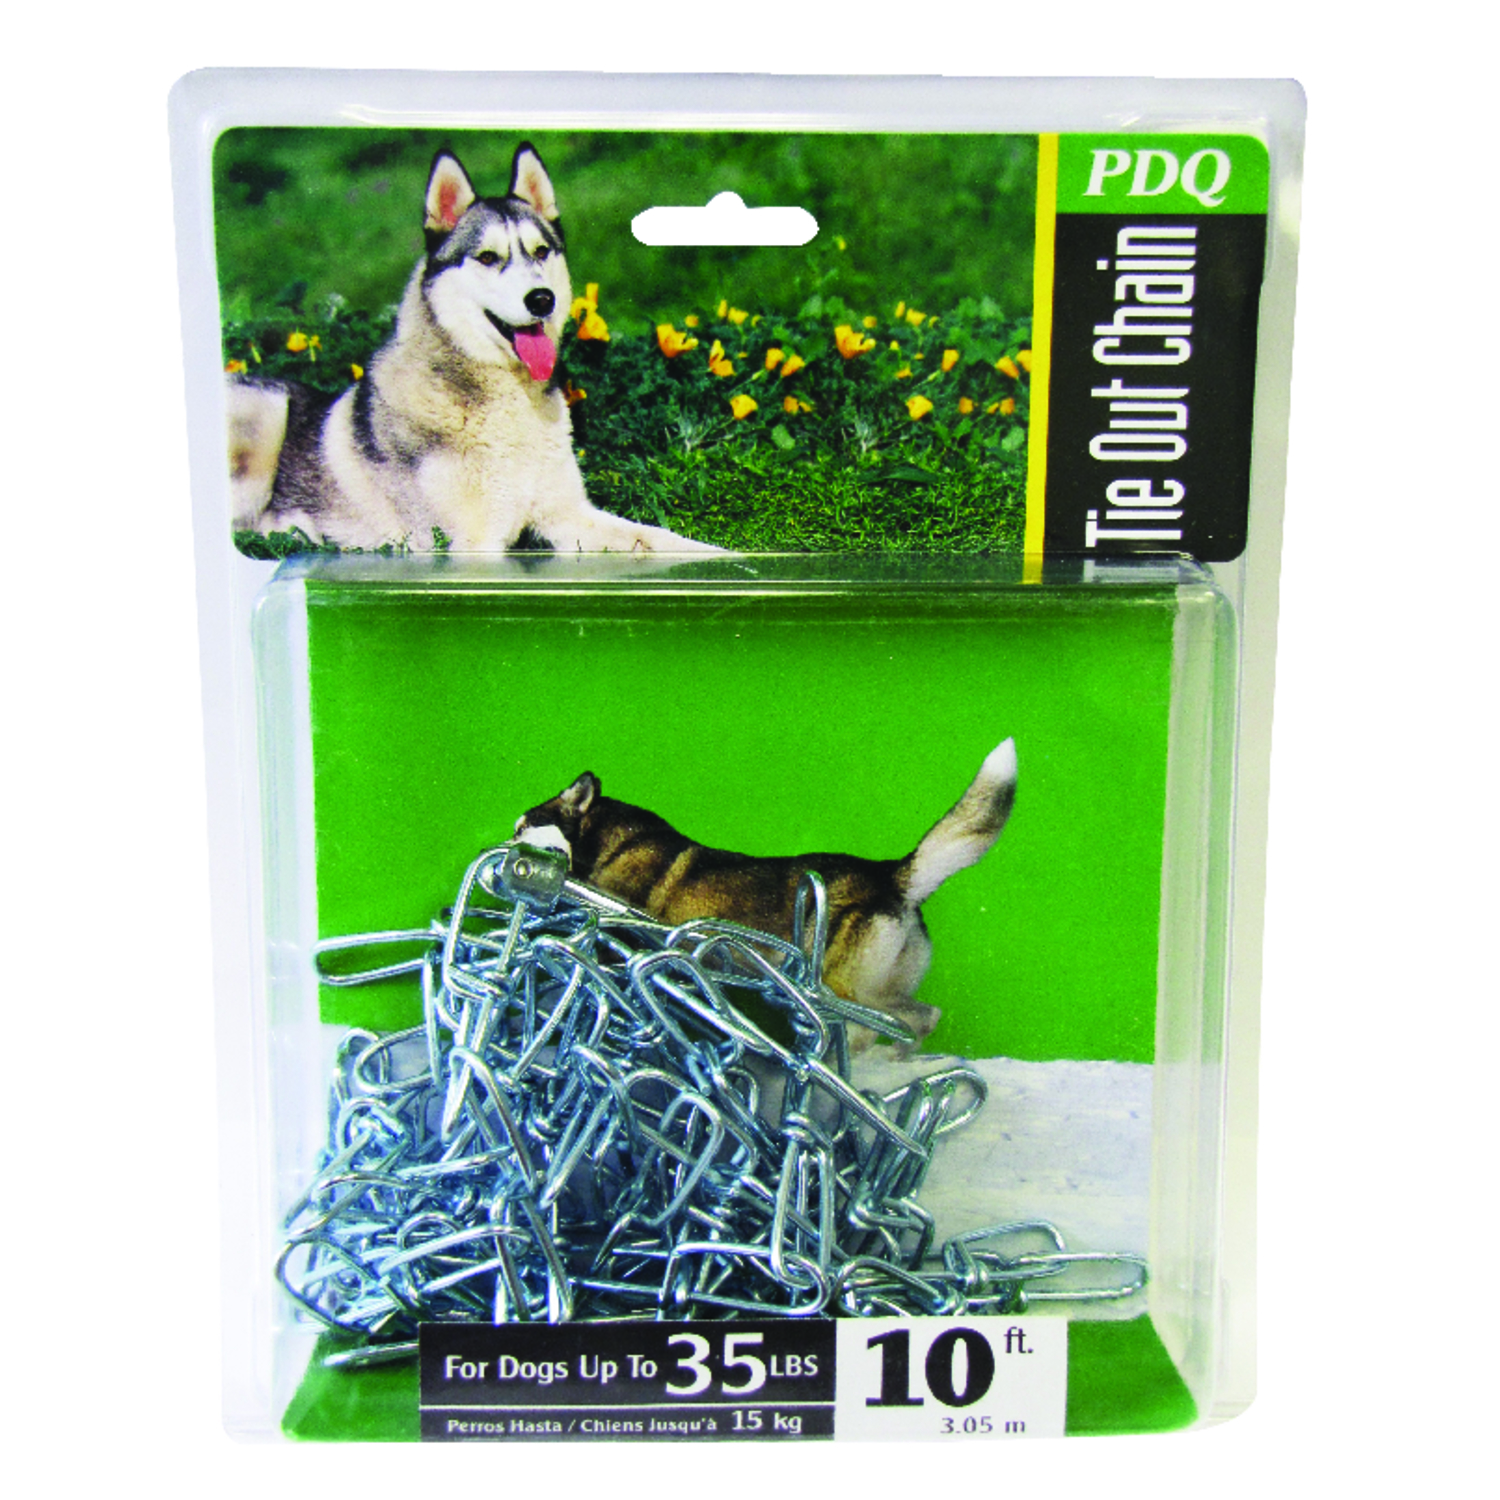 PDQ  Silver  Swivel Tie-Out Chain  Steel  Dog  Tie Out Chain  Small/Medium